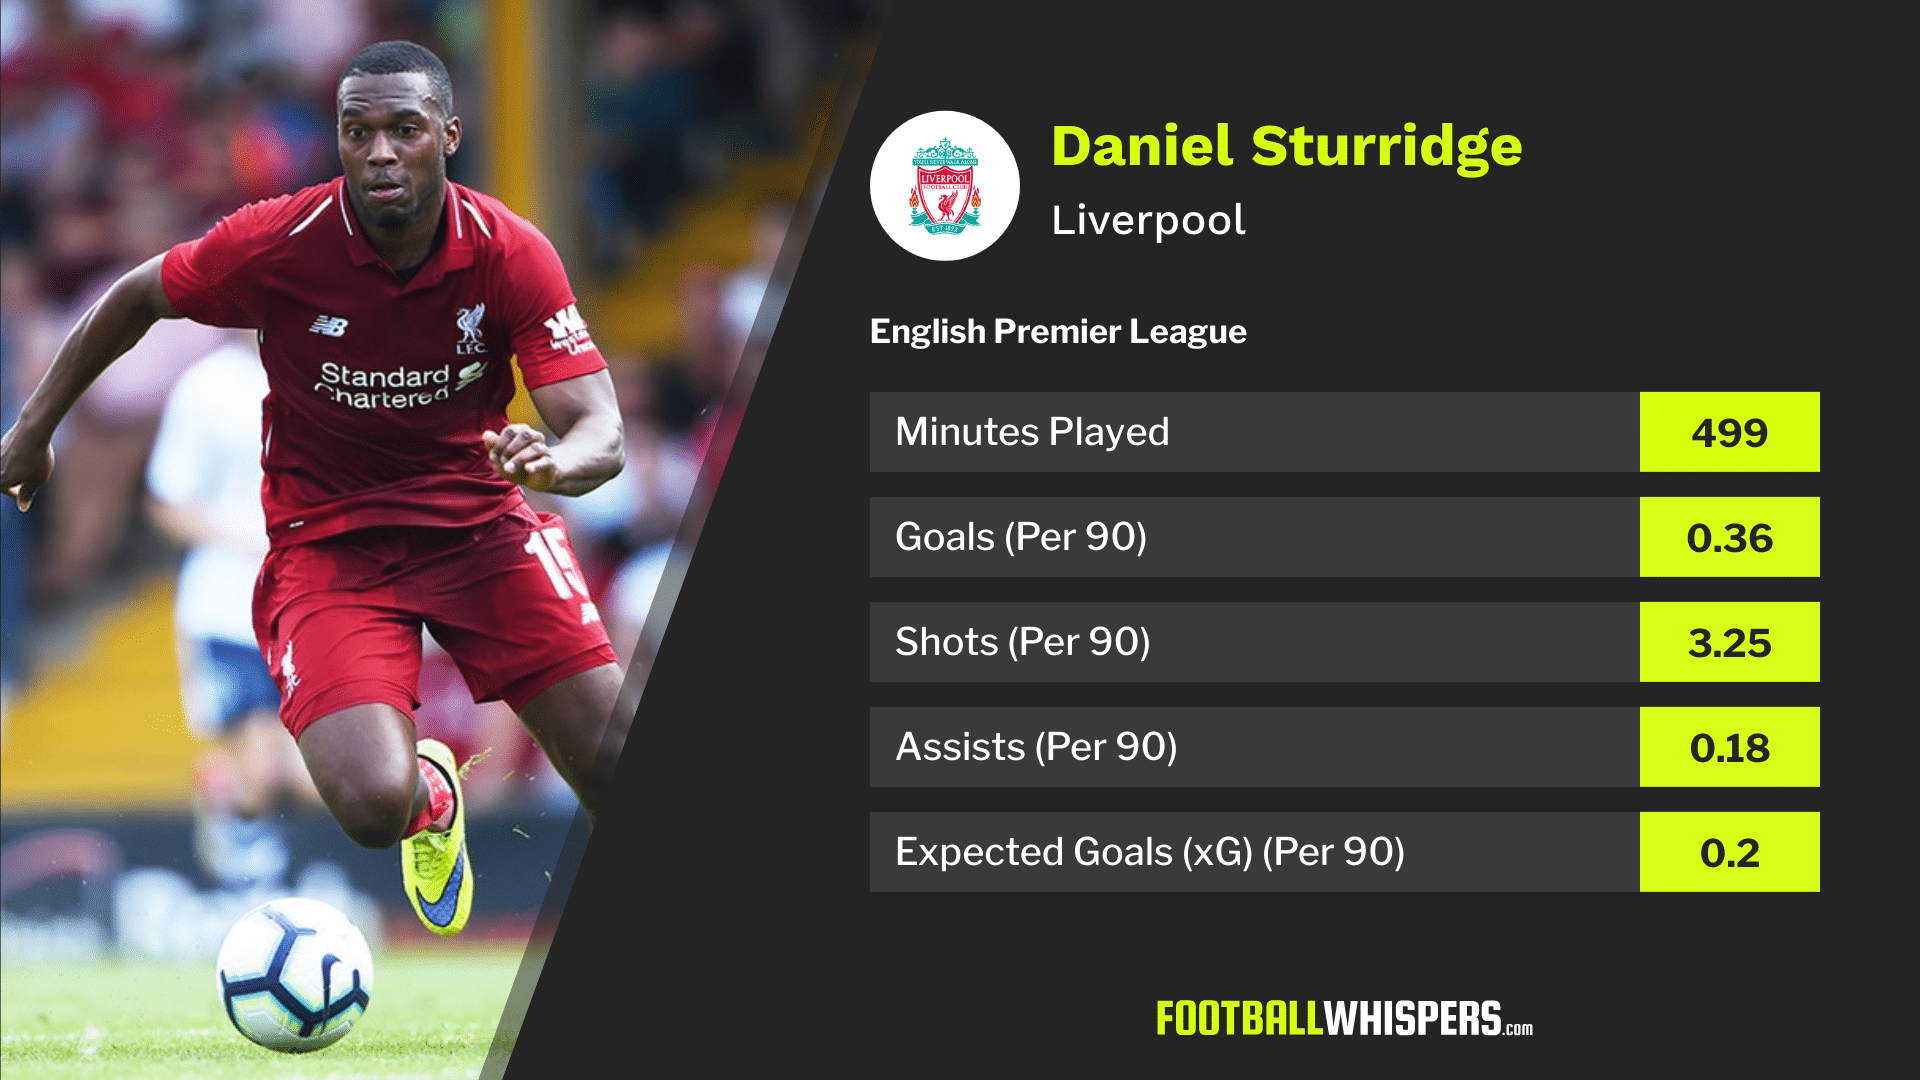 Liverpool forward Daniel Sturridge's 2018/19 Premier League stats